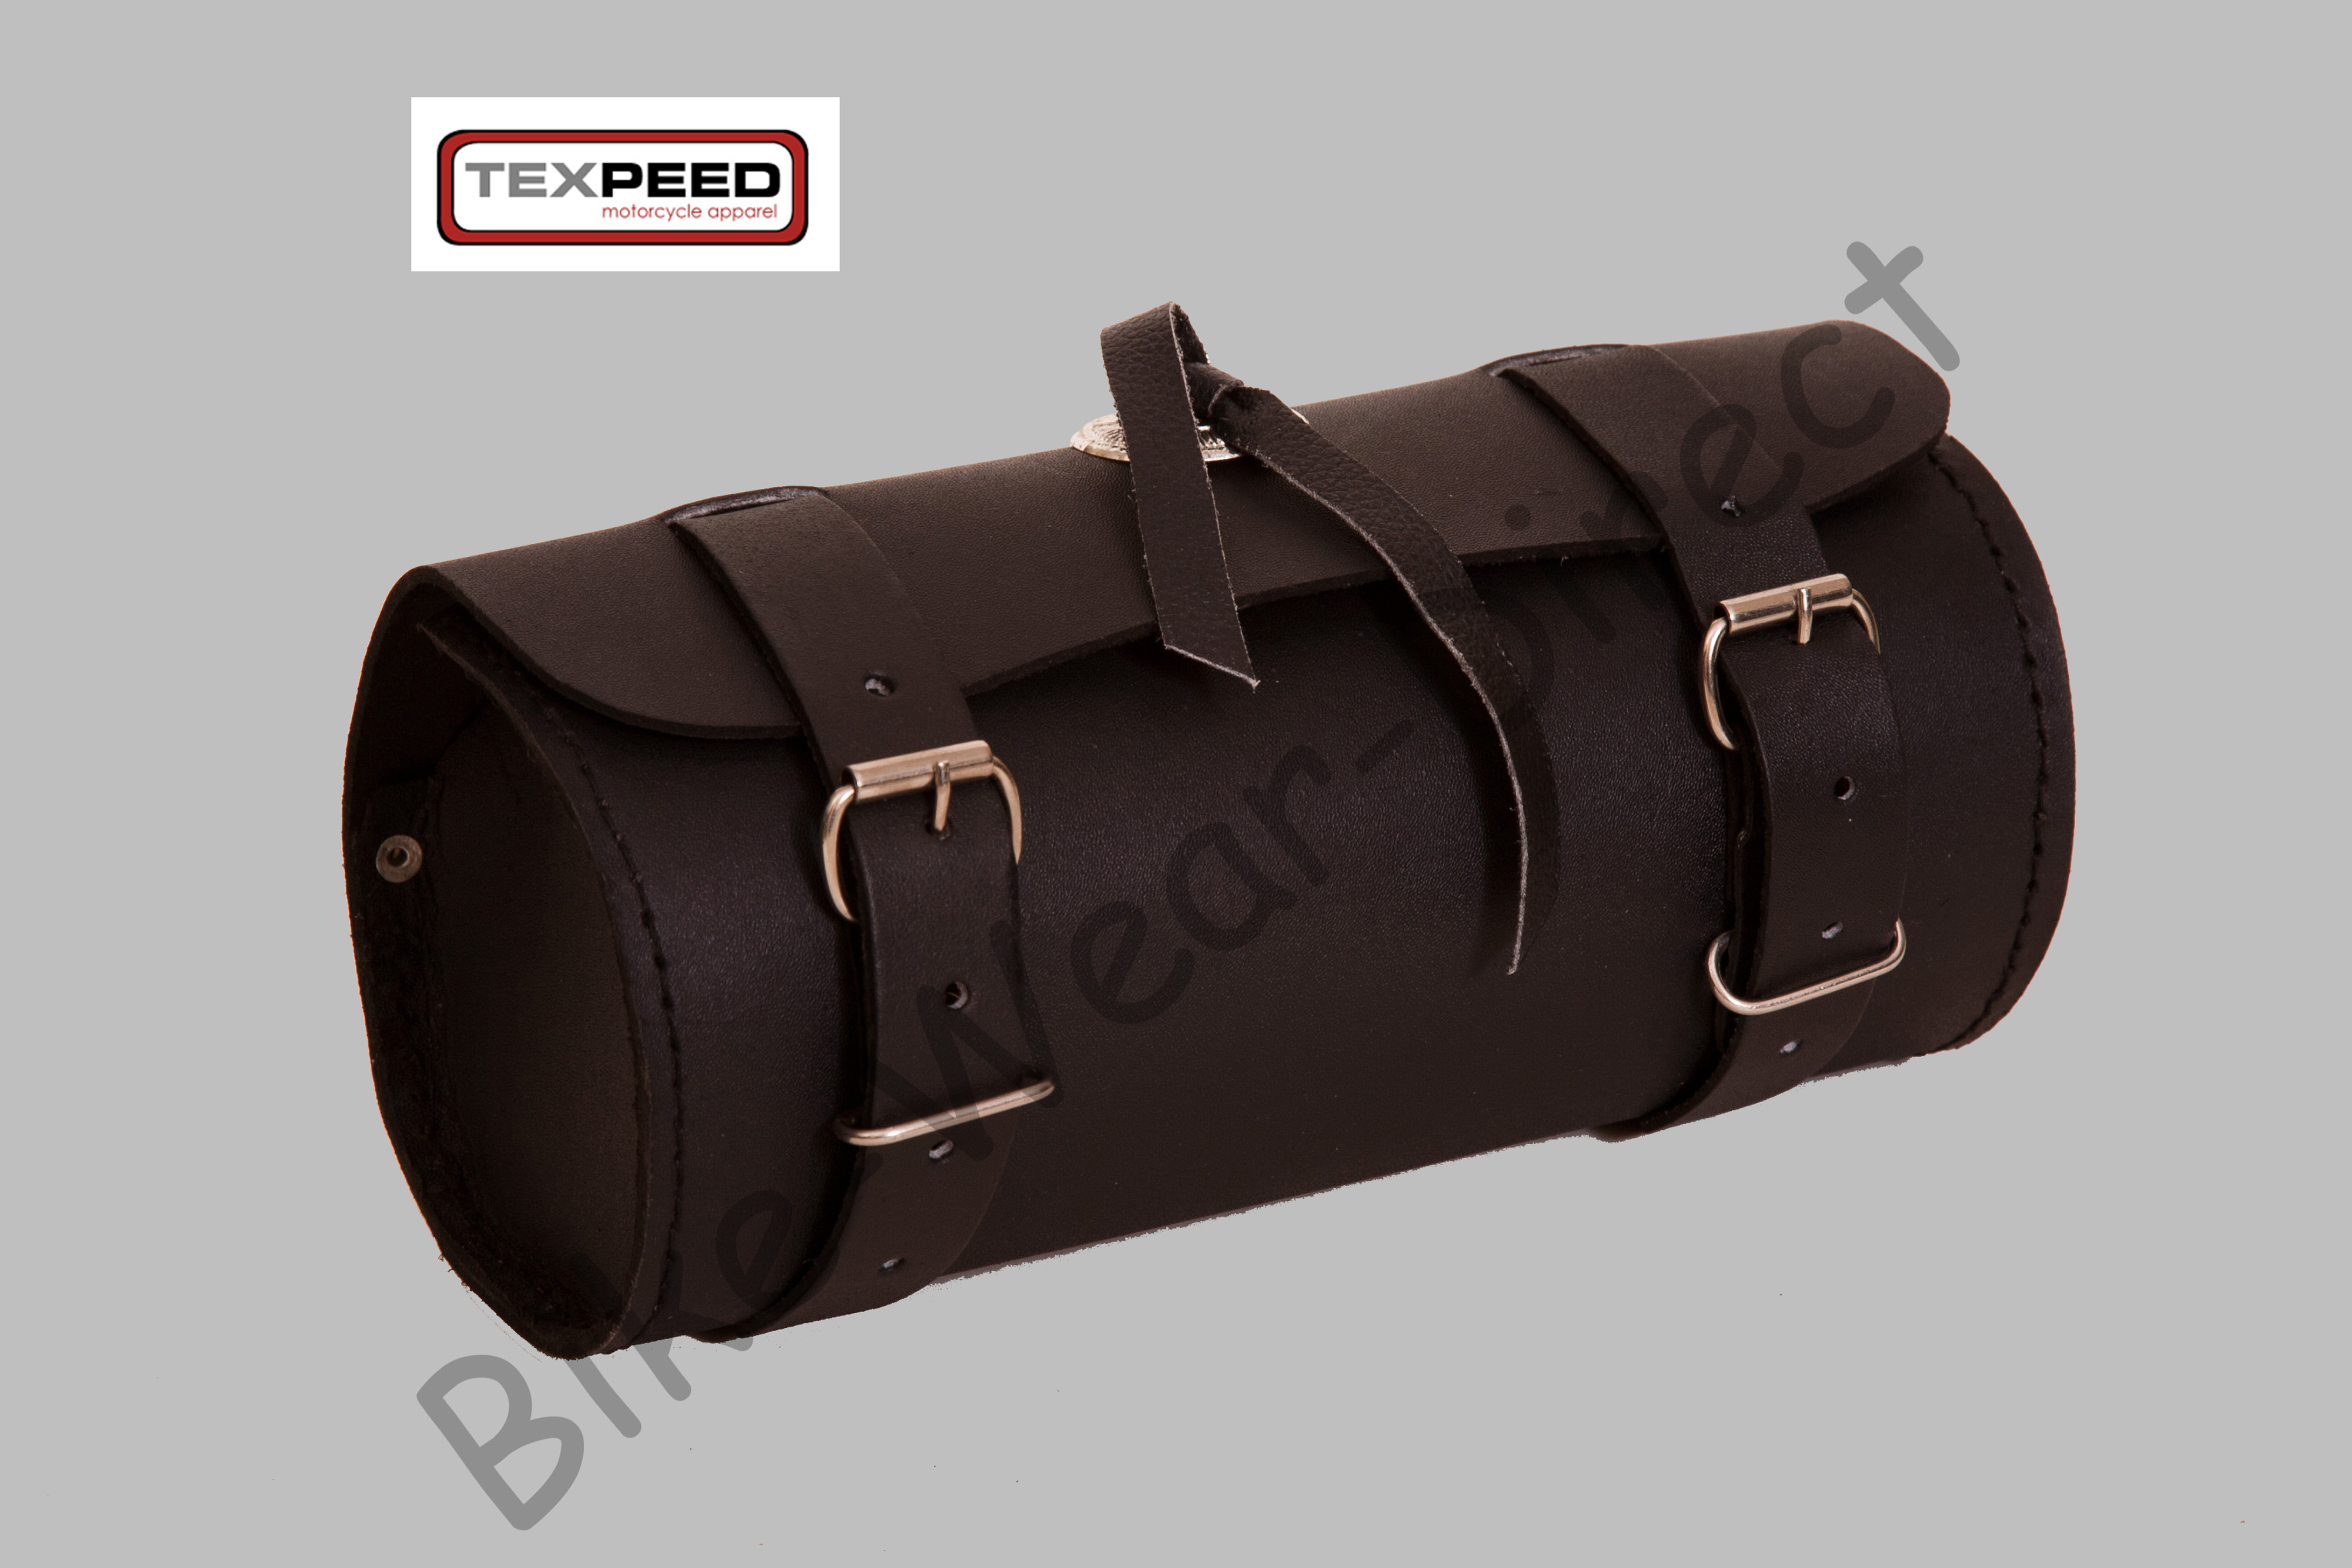 Leather Plain Tool Bag / Tool Roll Motorcycle Motorbike Paniers & Luggage NEW